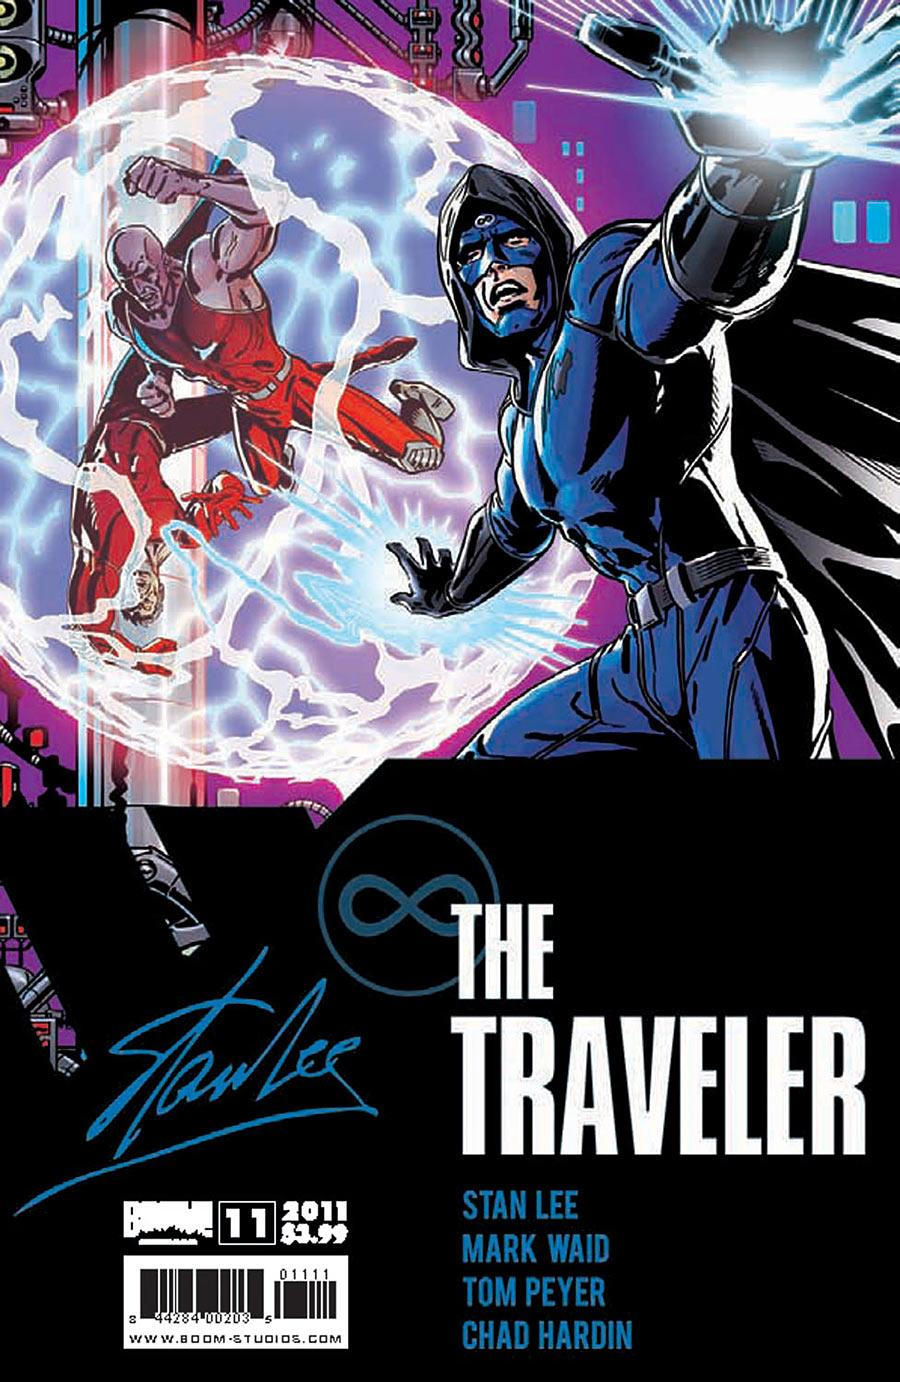 Stan Lee's The Traveler #11 (2011) free download